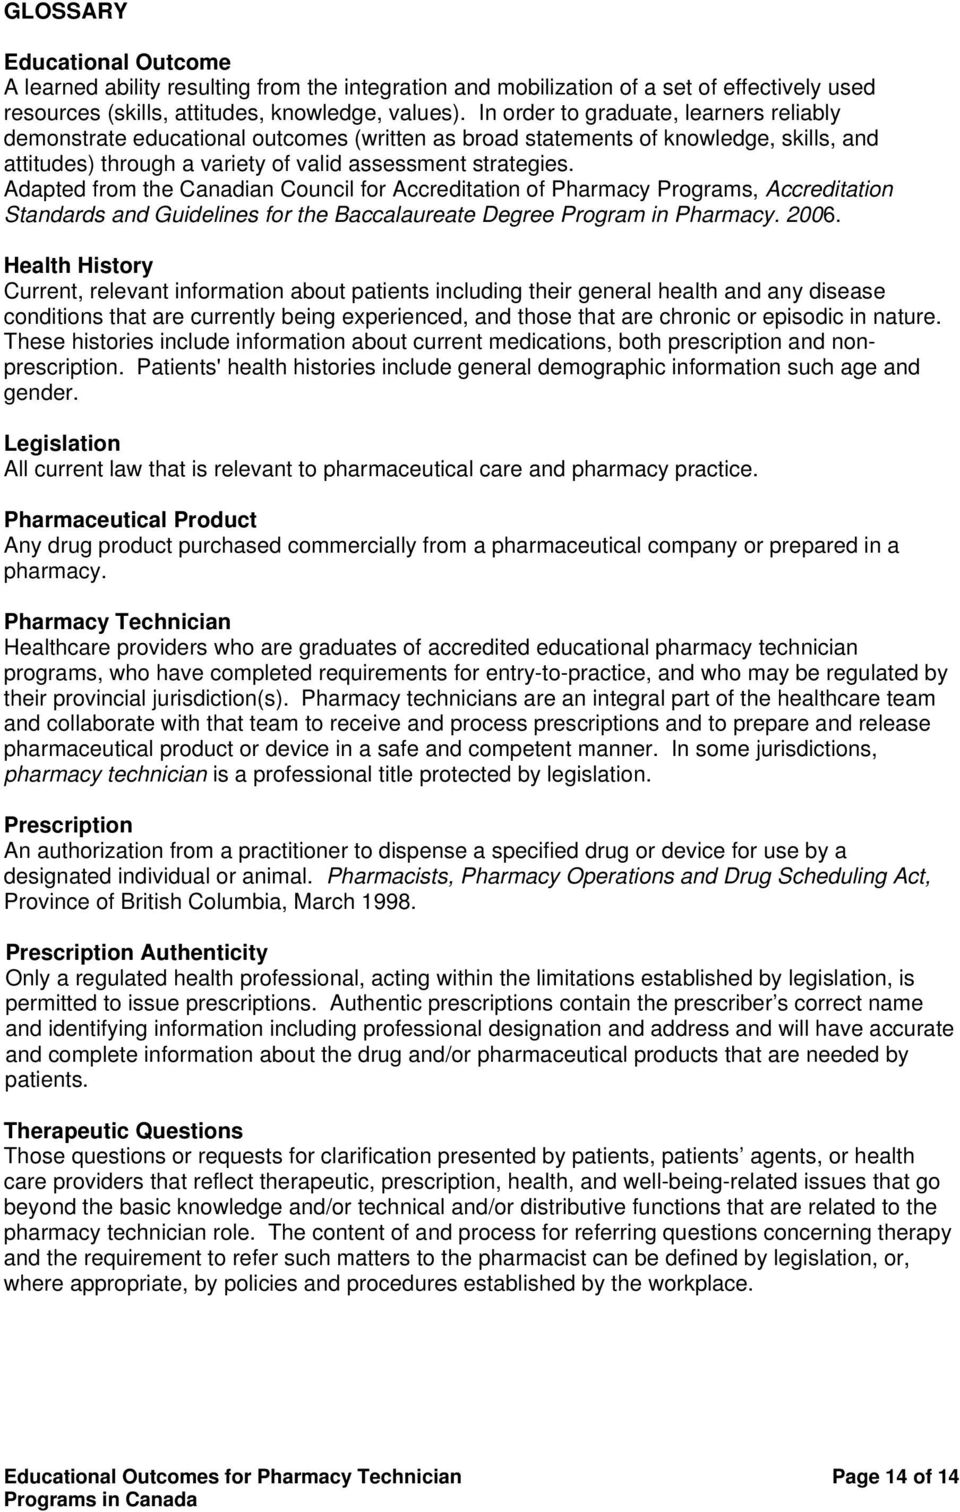 Adapted from the Canadian Council for Accreditation of Pharmacy Programs, Accreditation Standards and Guidelines for the Baccalaureate Degree Program in Pharmacy. 2006.